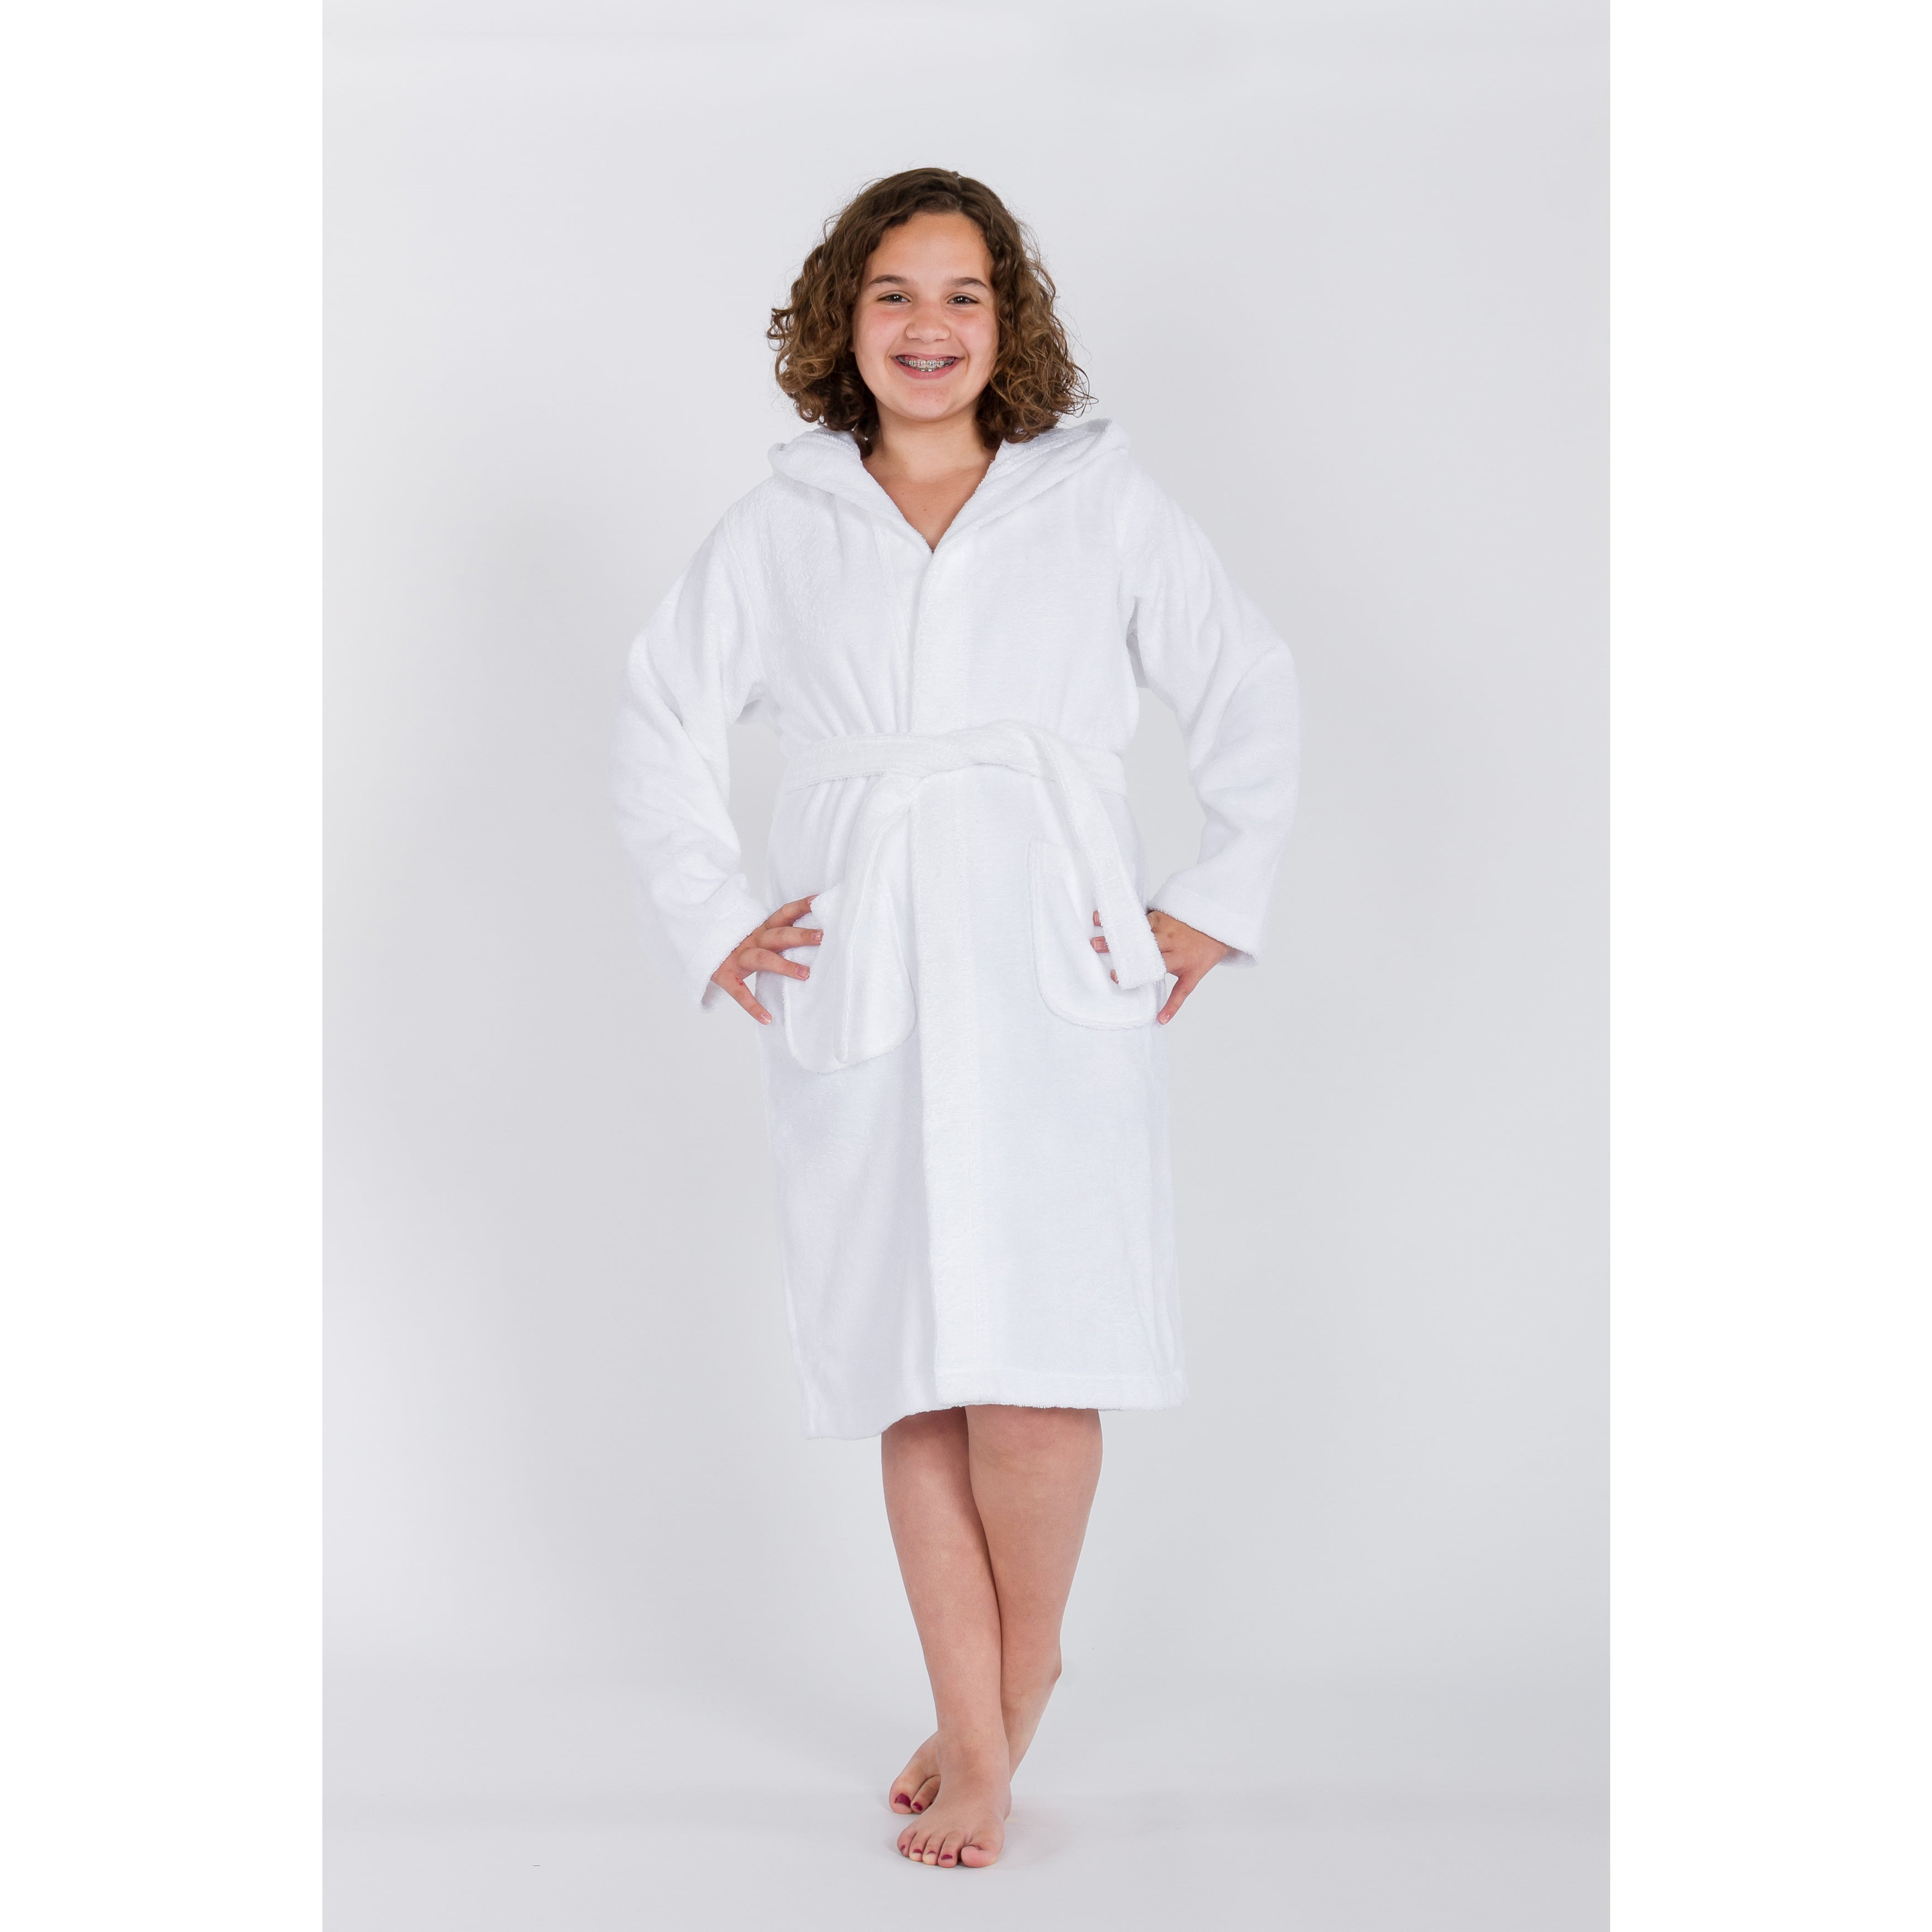 58a26199a09df Shop Sweet Kids White Turkish Cotton Hooded Unisex Terry Bathrobe - On Sale  - Free Shipping On Orders Over $45 - Overstock - 11408261